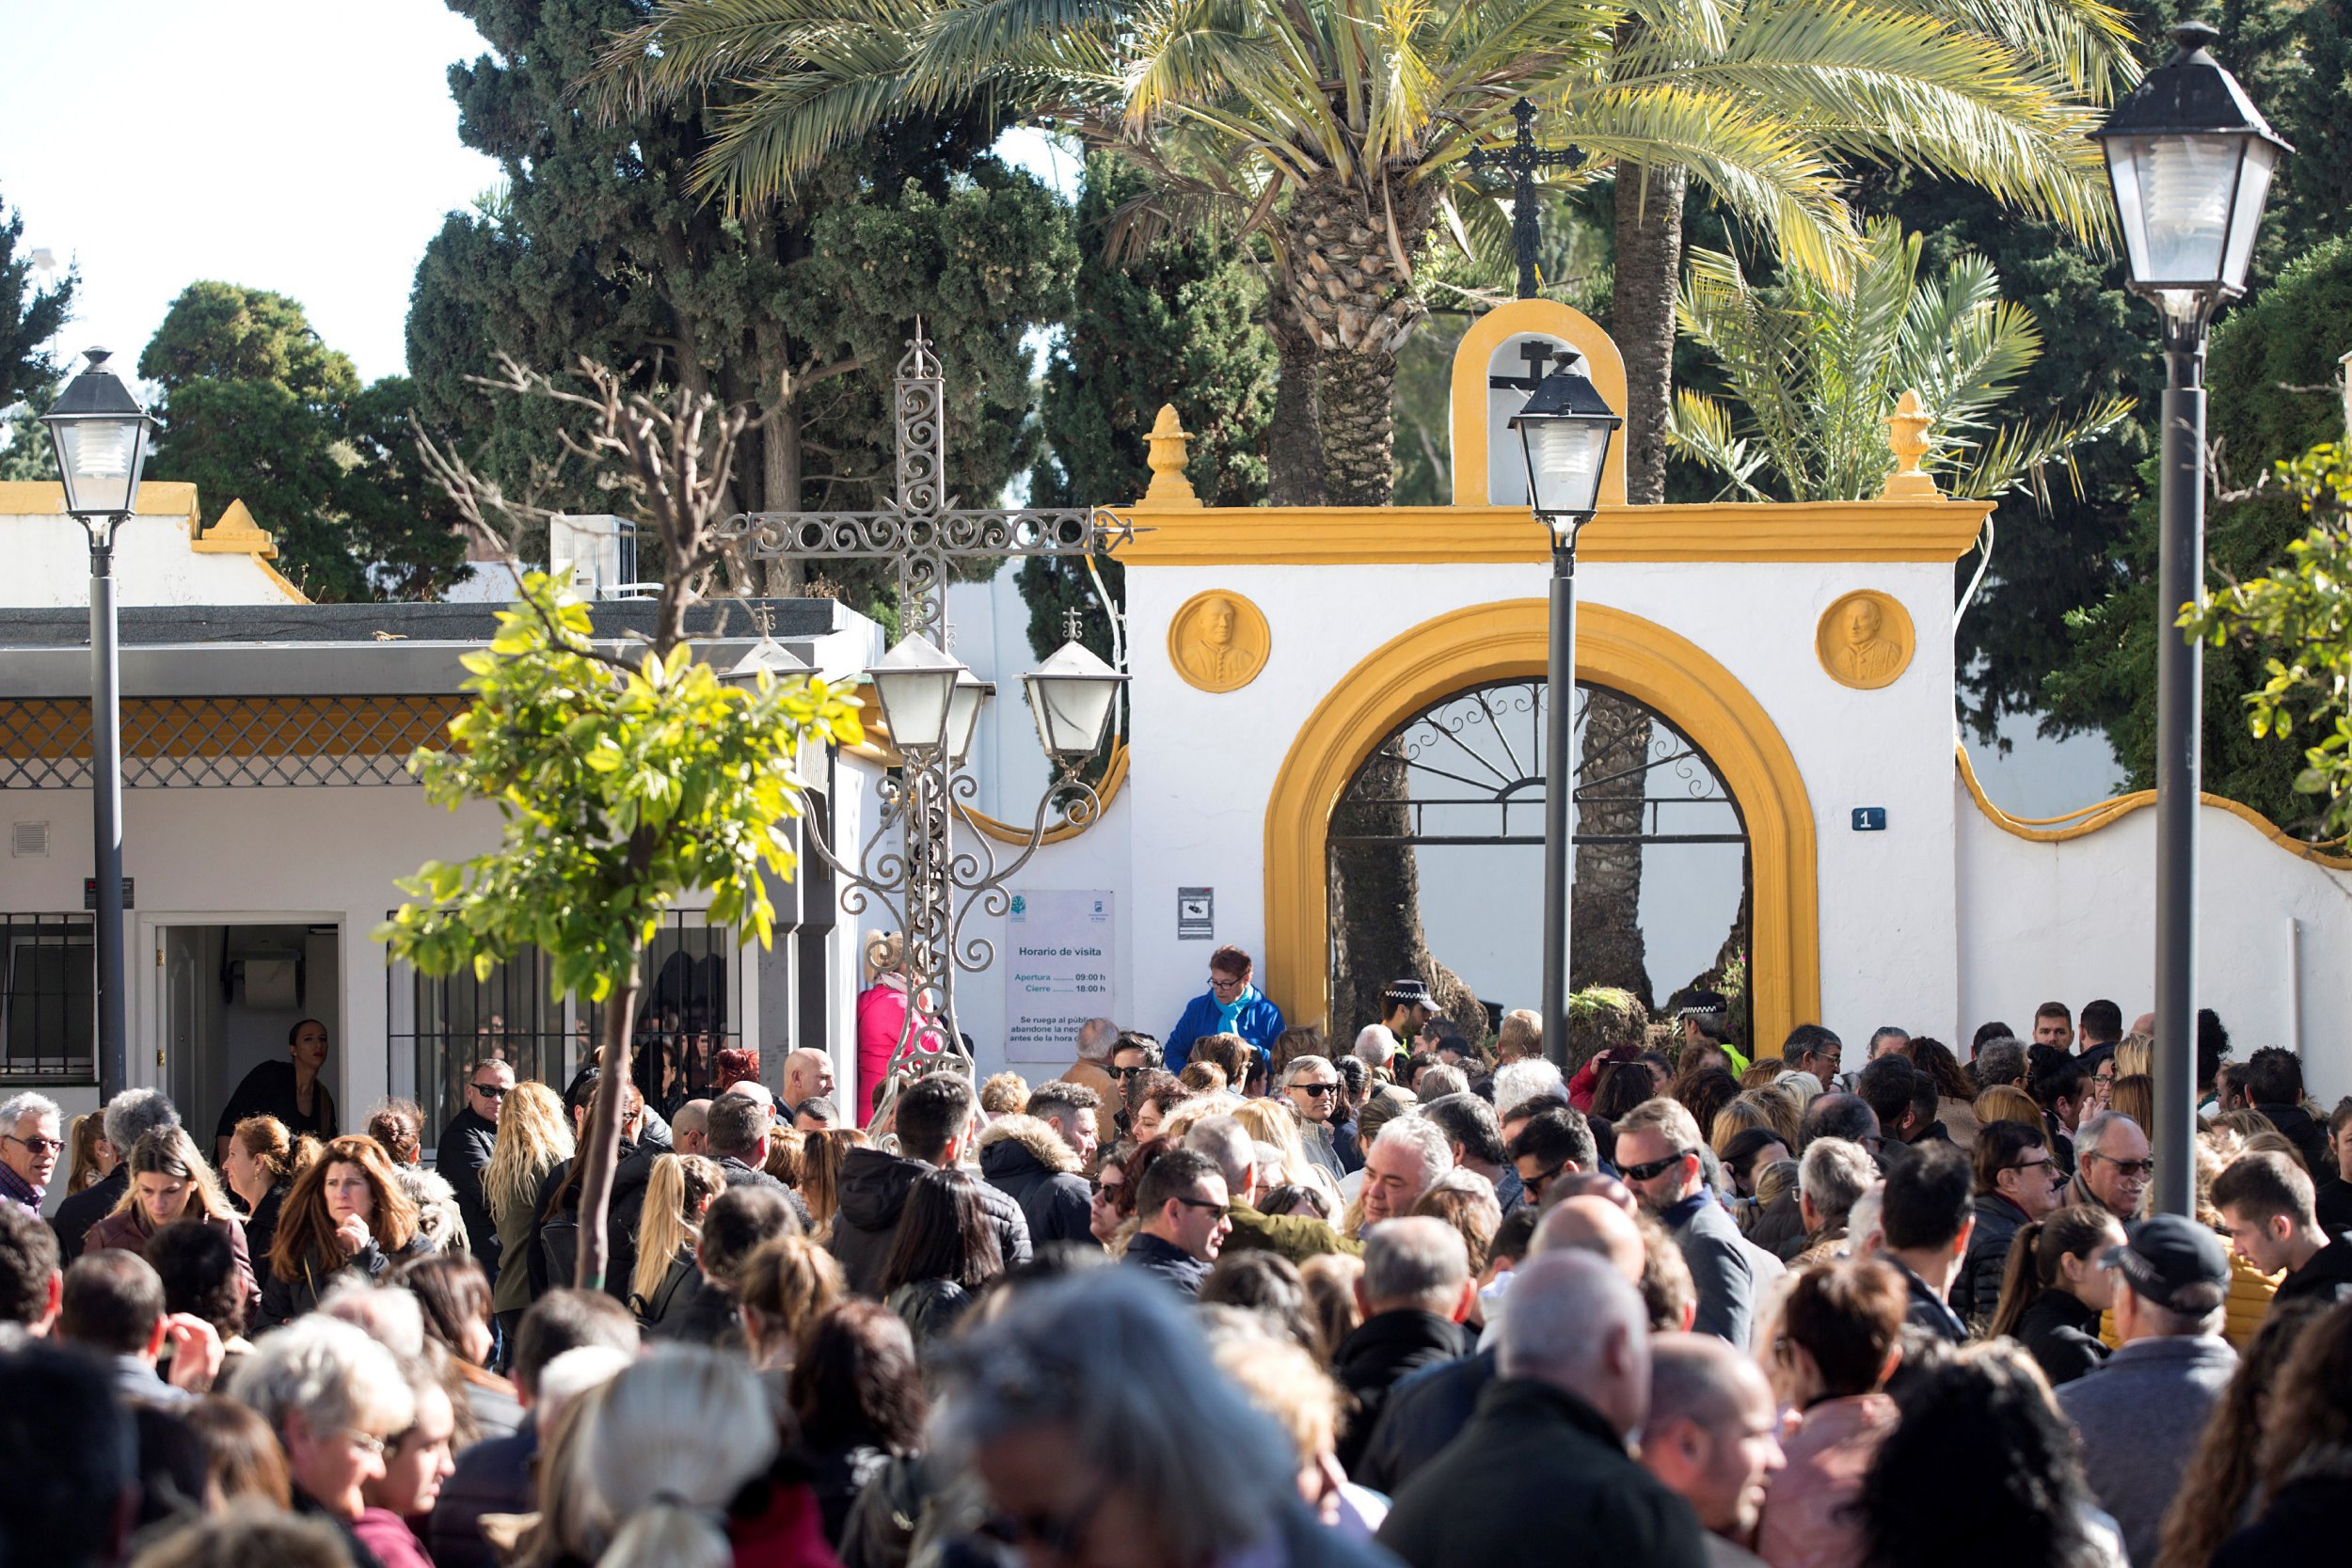 epa07324913 Hundreds of people bid farewell to Julen at the cemetery in El Palo, Malaga, Spain, during the young boy's burrial, 27 January 2019. Two-year-old Julen fell into a well on 13 January 2019 while he was spending the day out in the countryside with his family. The toddler's body was finally found 10 days later, 71 meters underground, after days of works to get him out of the 25cm-wide well. The width of the well and the hardness of the ground delayed the rescue operation. According to the autopsy, the toddler died 13 January 2019 due to the injuries caused by the 71 meter fall. EPA/Daniel Perez